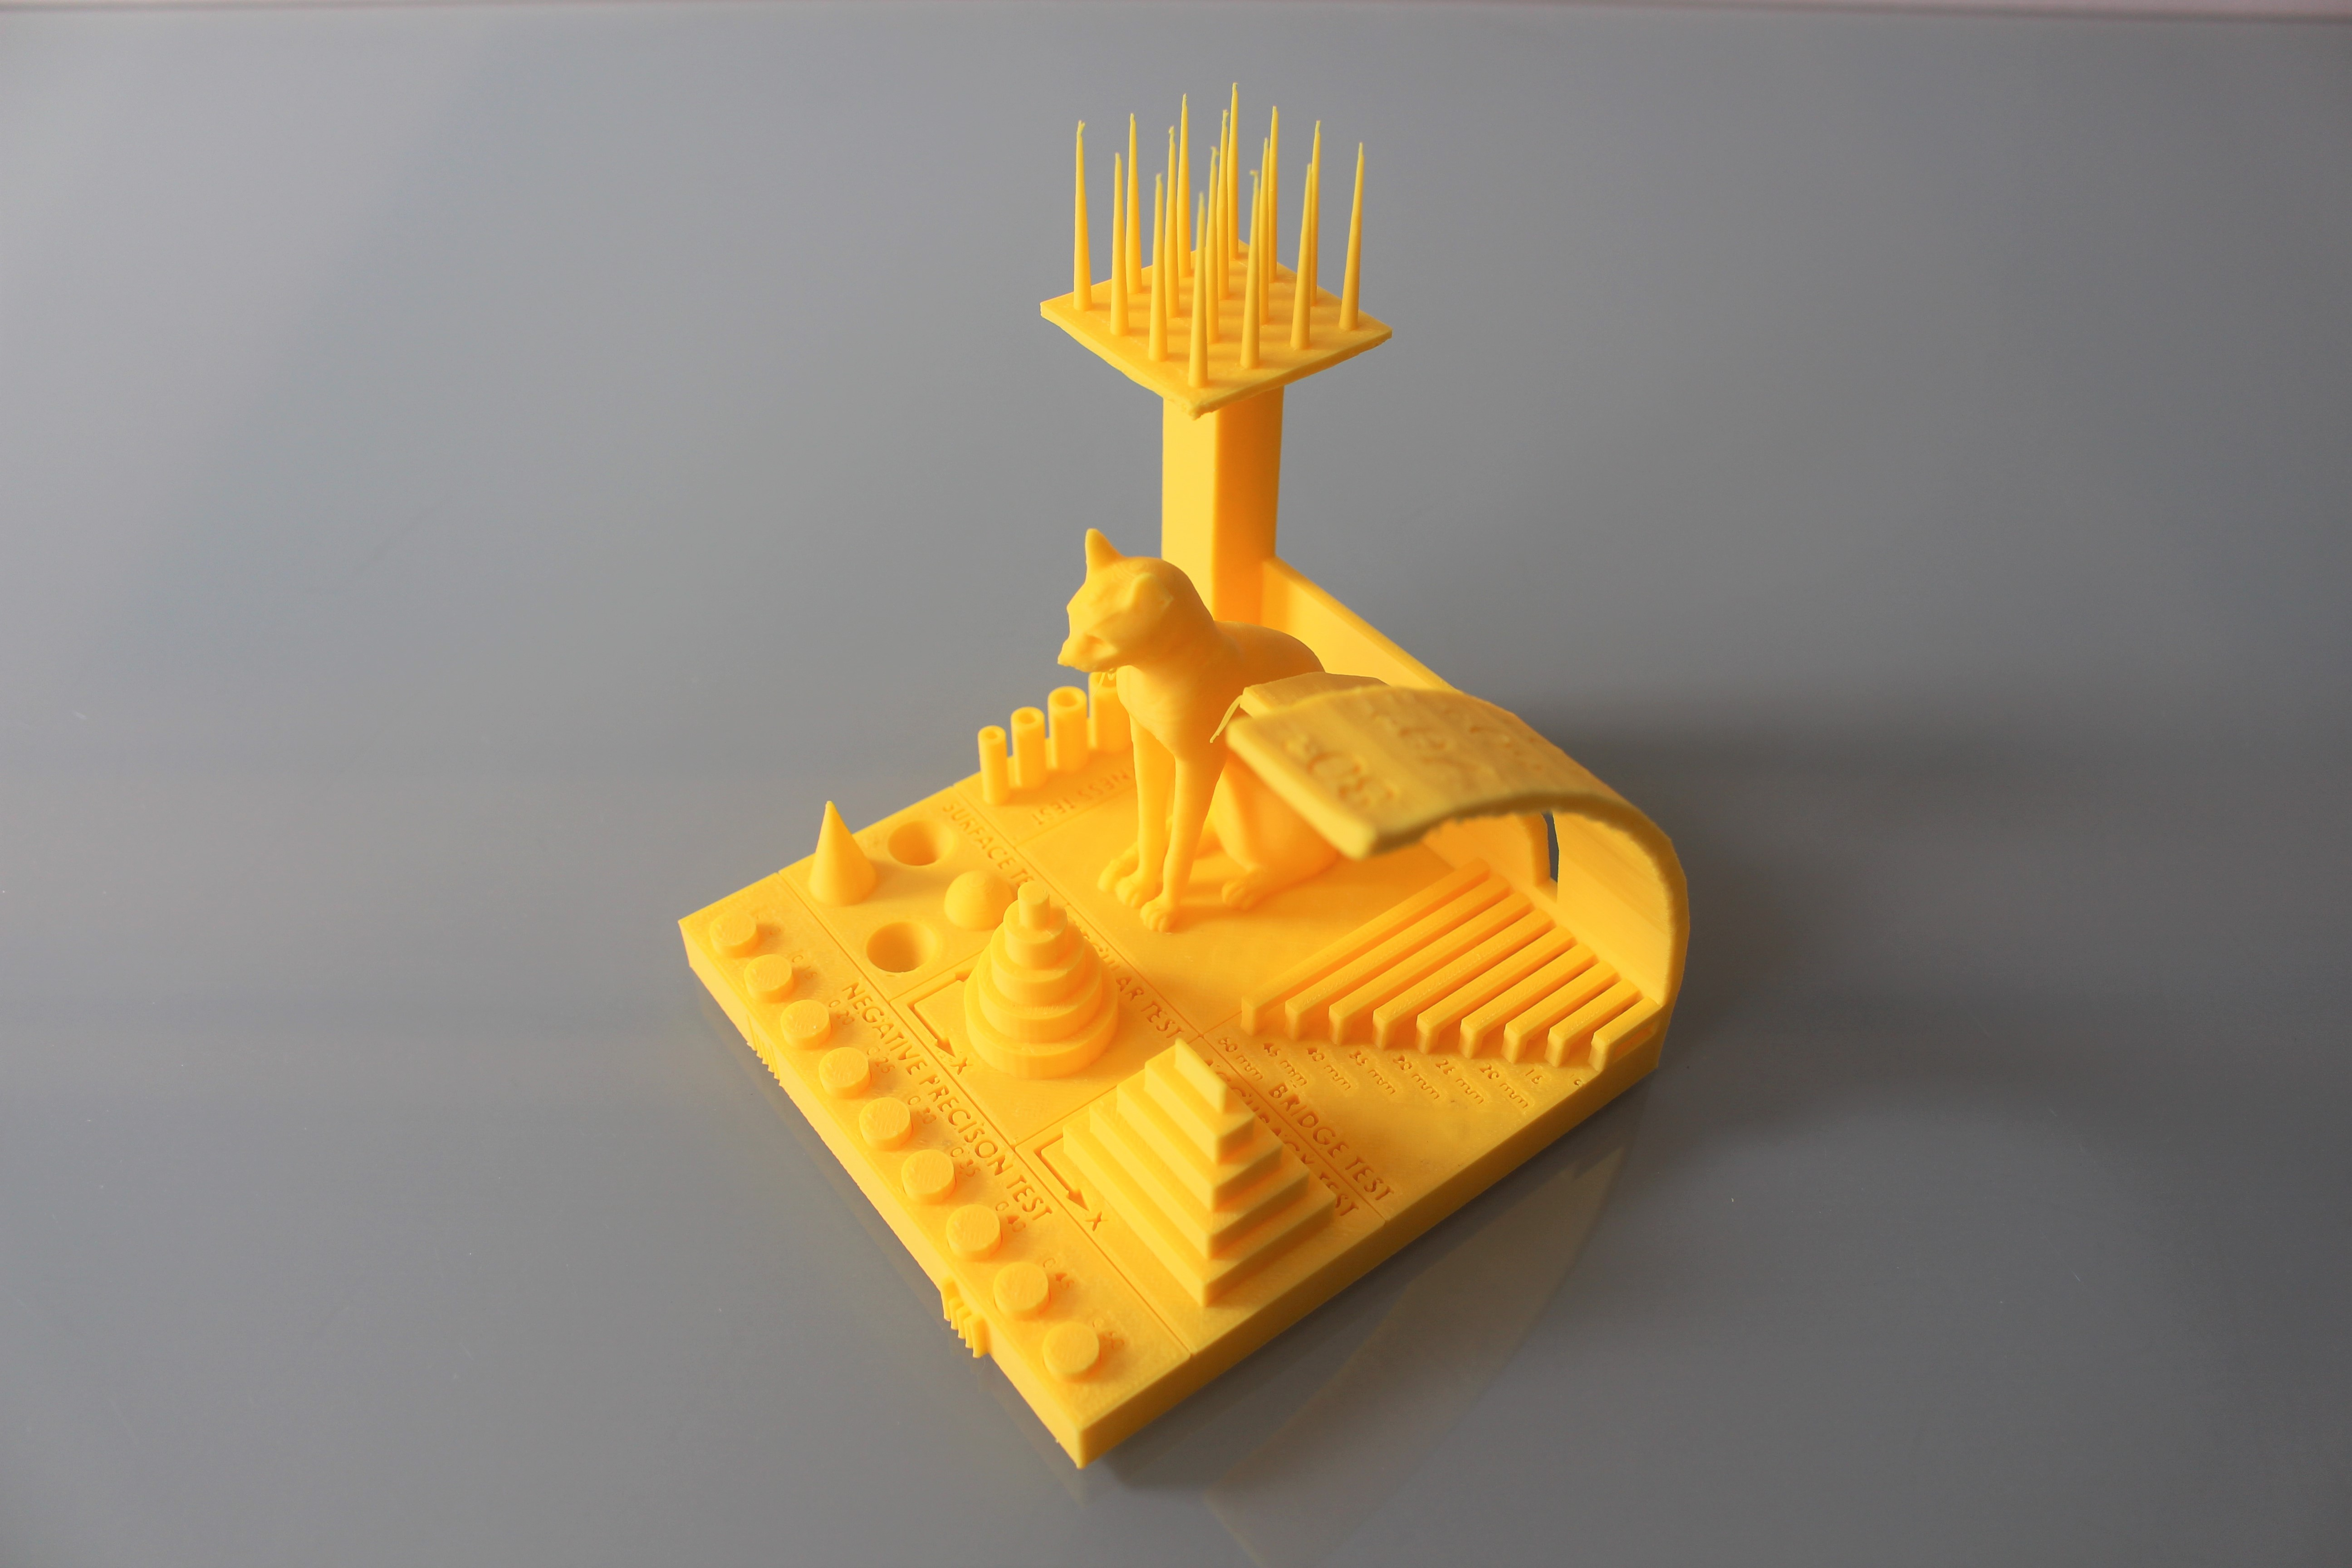 The 3D Printing Industry benchmarking model. Photo by 3D Printing Industry.